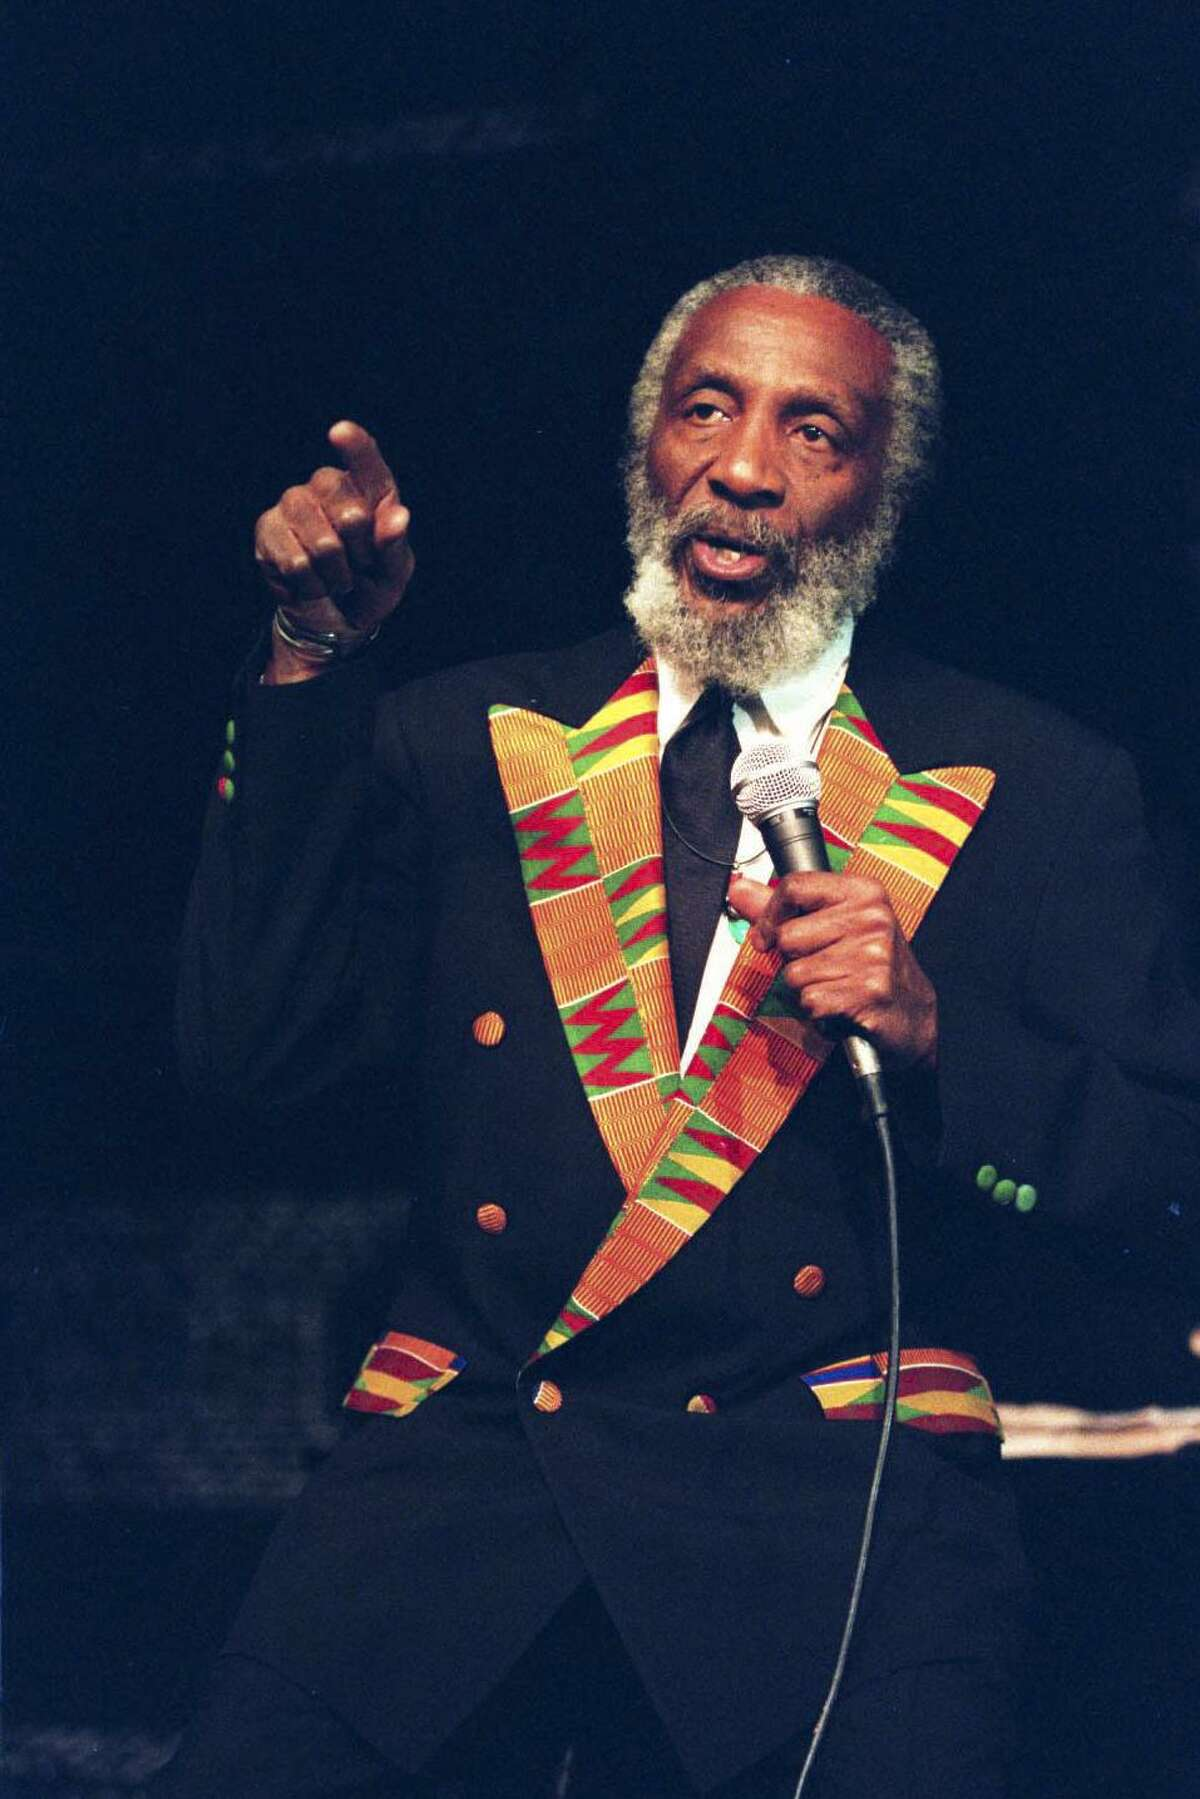 Dick Gregory performing at the Samuel Beckett Theater, New York, Dec. 5, 1995. An appearance at St. Mary's University in 1966 included a monologue with uncomfortable truths that shocked the sensibilities of many San Antonians.